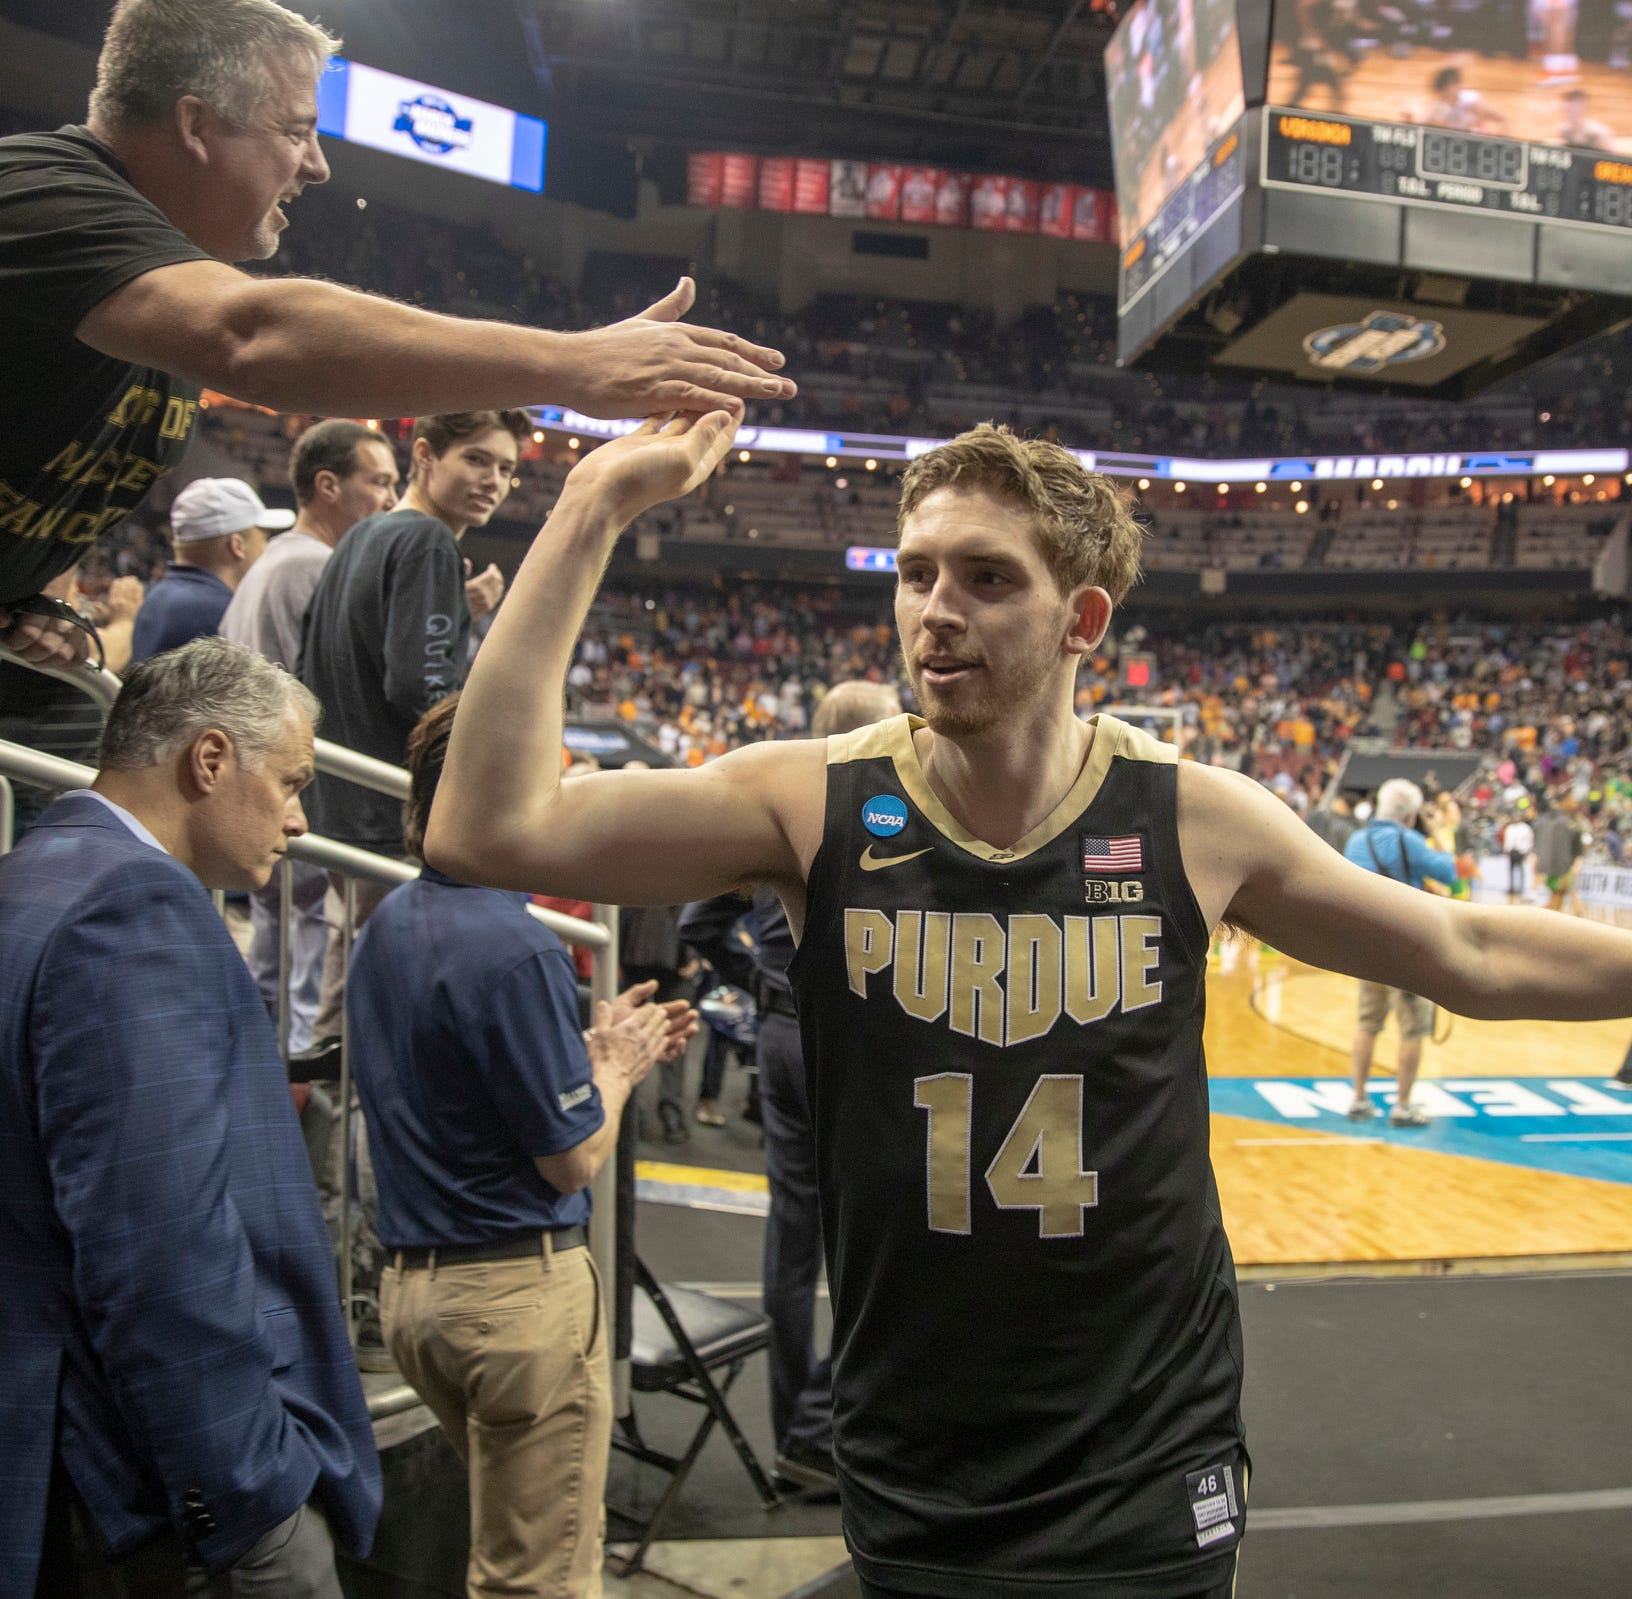 Doyel: For Purdue, this wasn't supposed to happen. Not this year. And that makes it so much sweeter